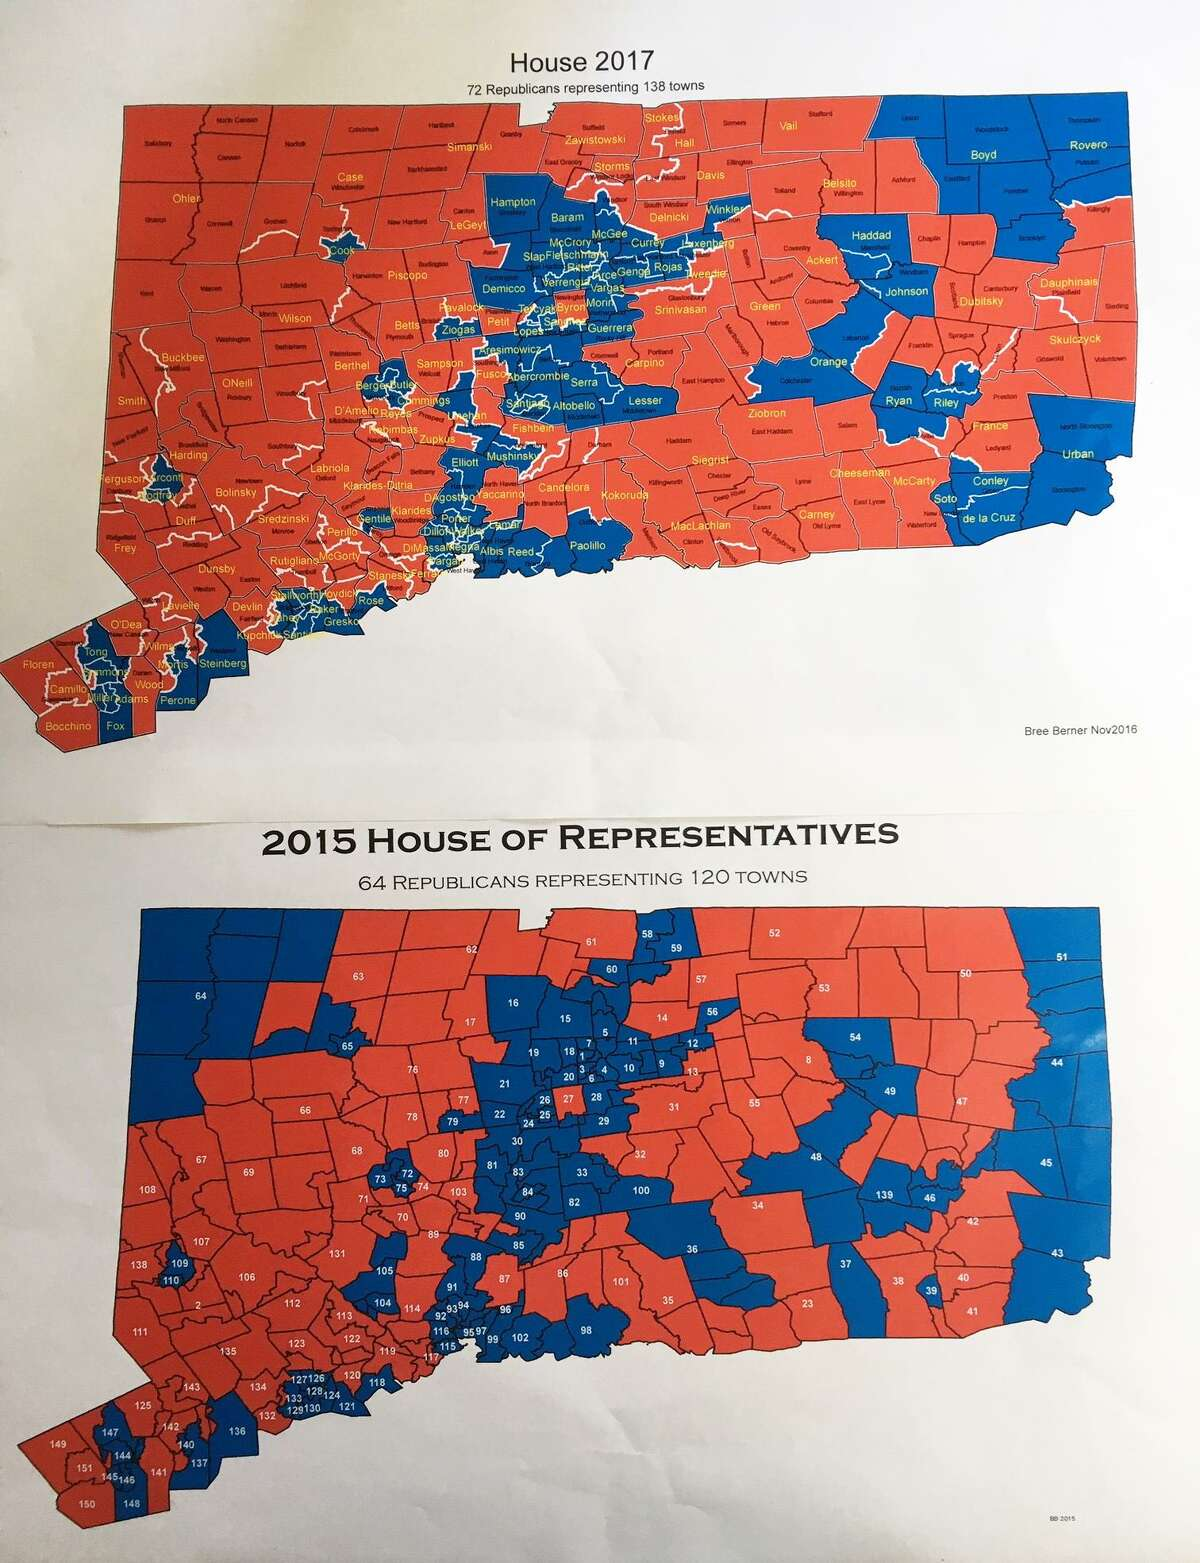 These maps, shared by House Republicans, show where Republicans made gains after the 2014 and 2016 elections. Republican seat are red, while Democratic seats are blue.